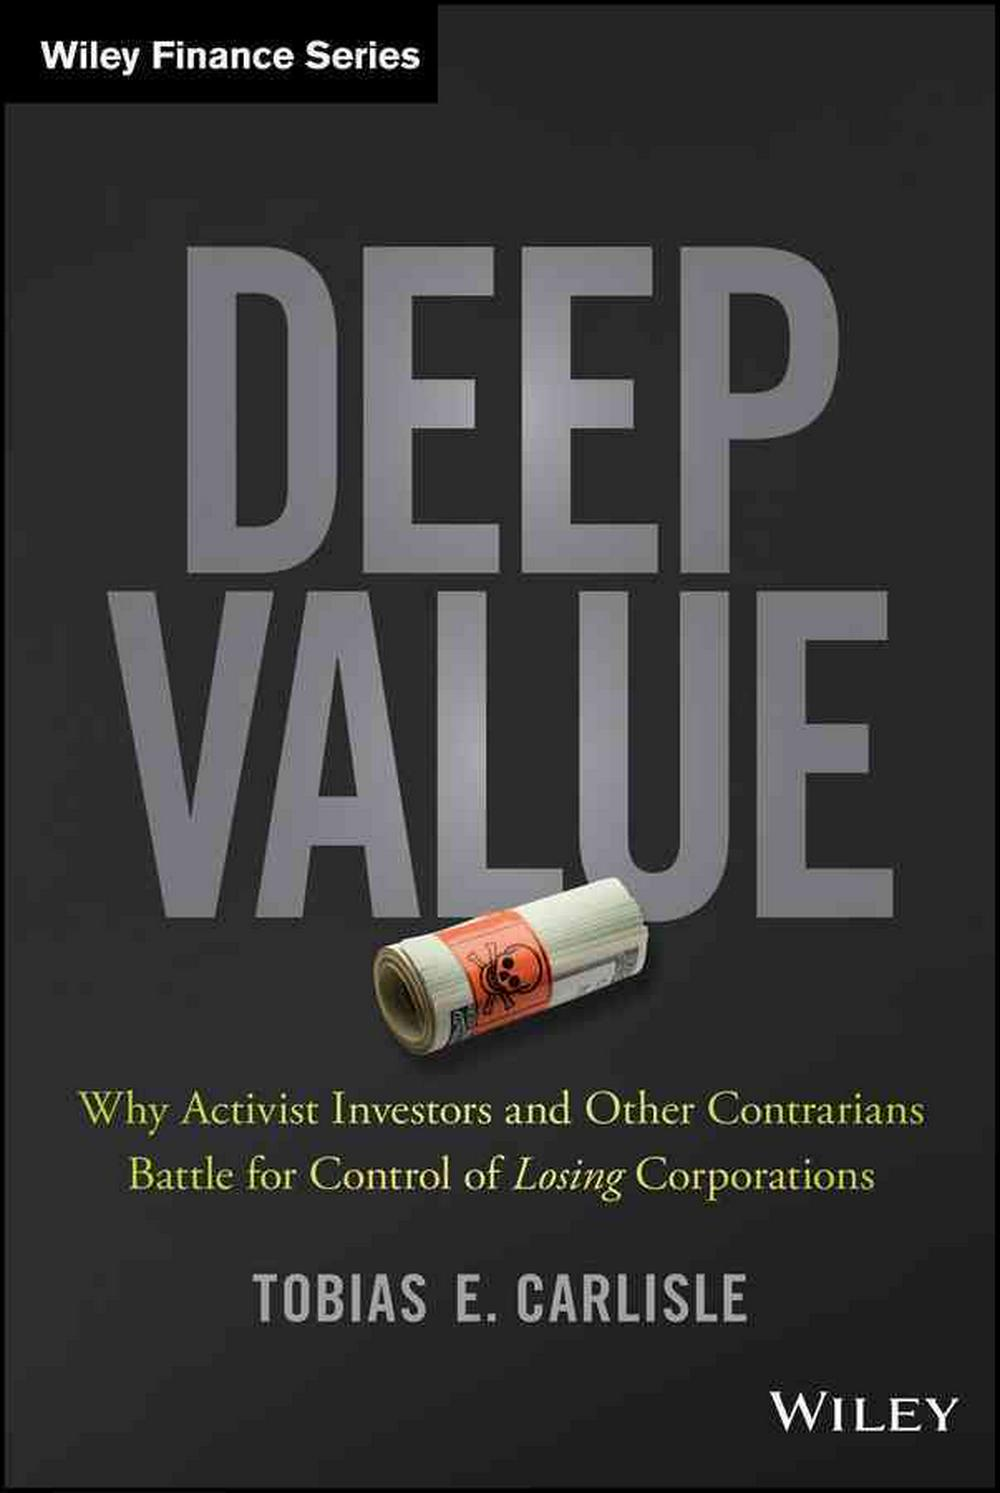 Deep Value: Why Activists Investors and Other Contrarians Battle for Control of Losing Corporations (Wiley Finance) by Tobias E. Carlisle, ISBN: 9781118747964